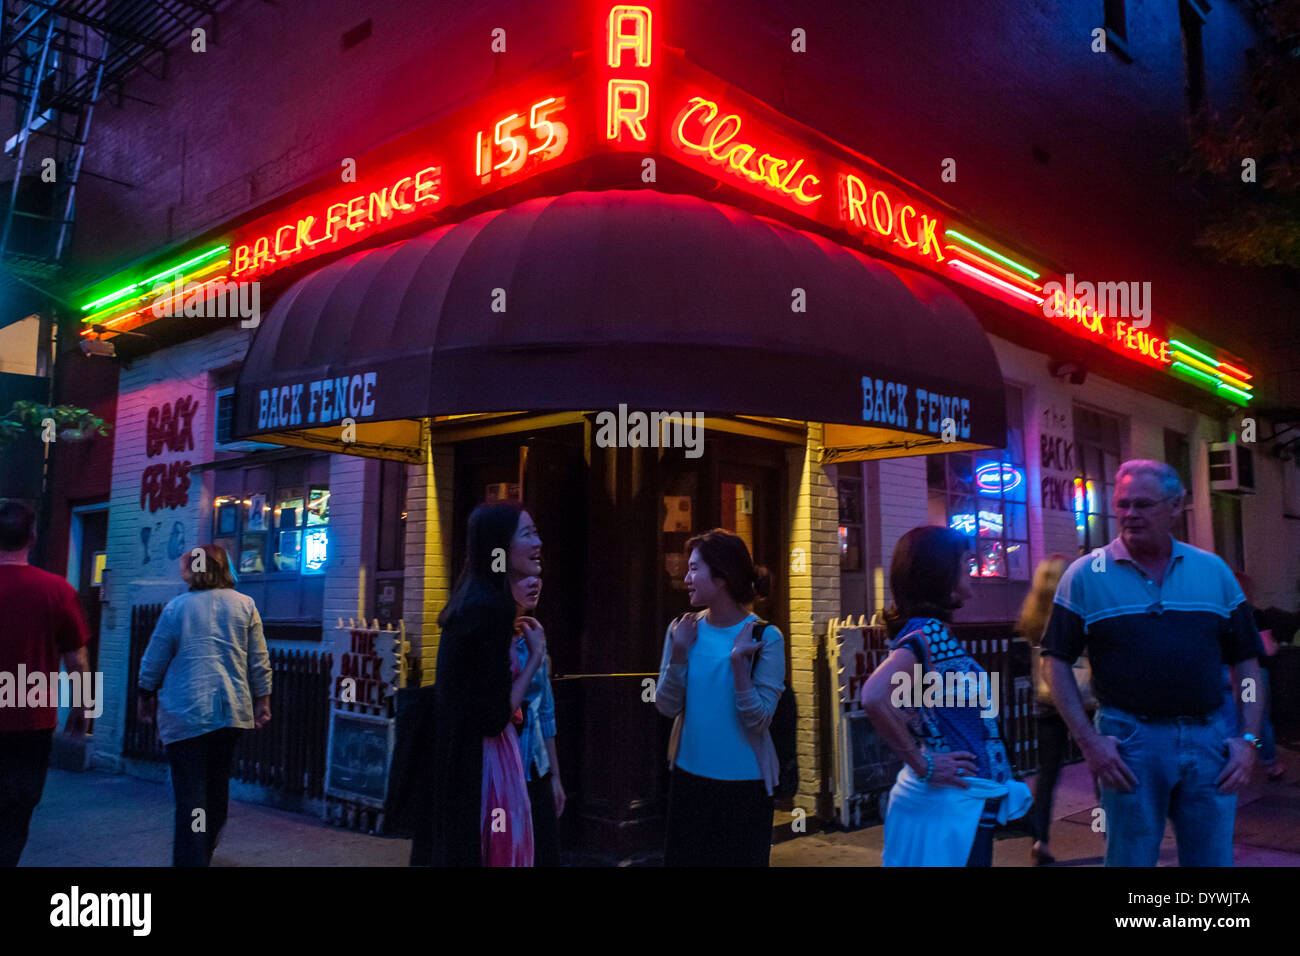 New York, NY The Back Fence, a music venue in Greenwich Village ©Stacy Walsh Rosenstock/Alamy - Stock Image